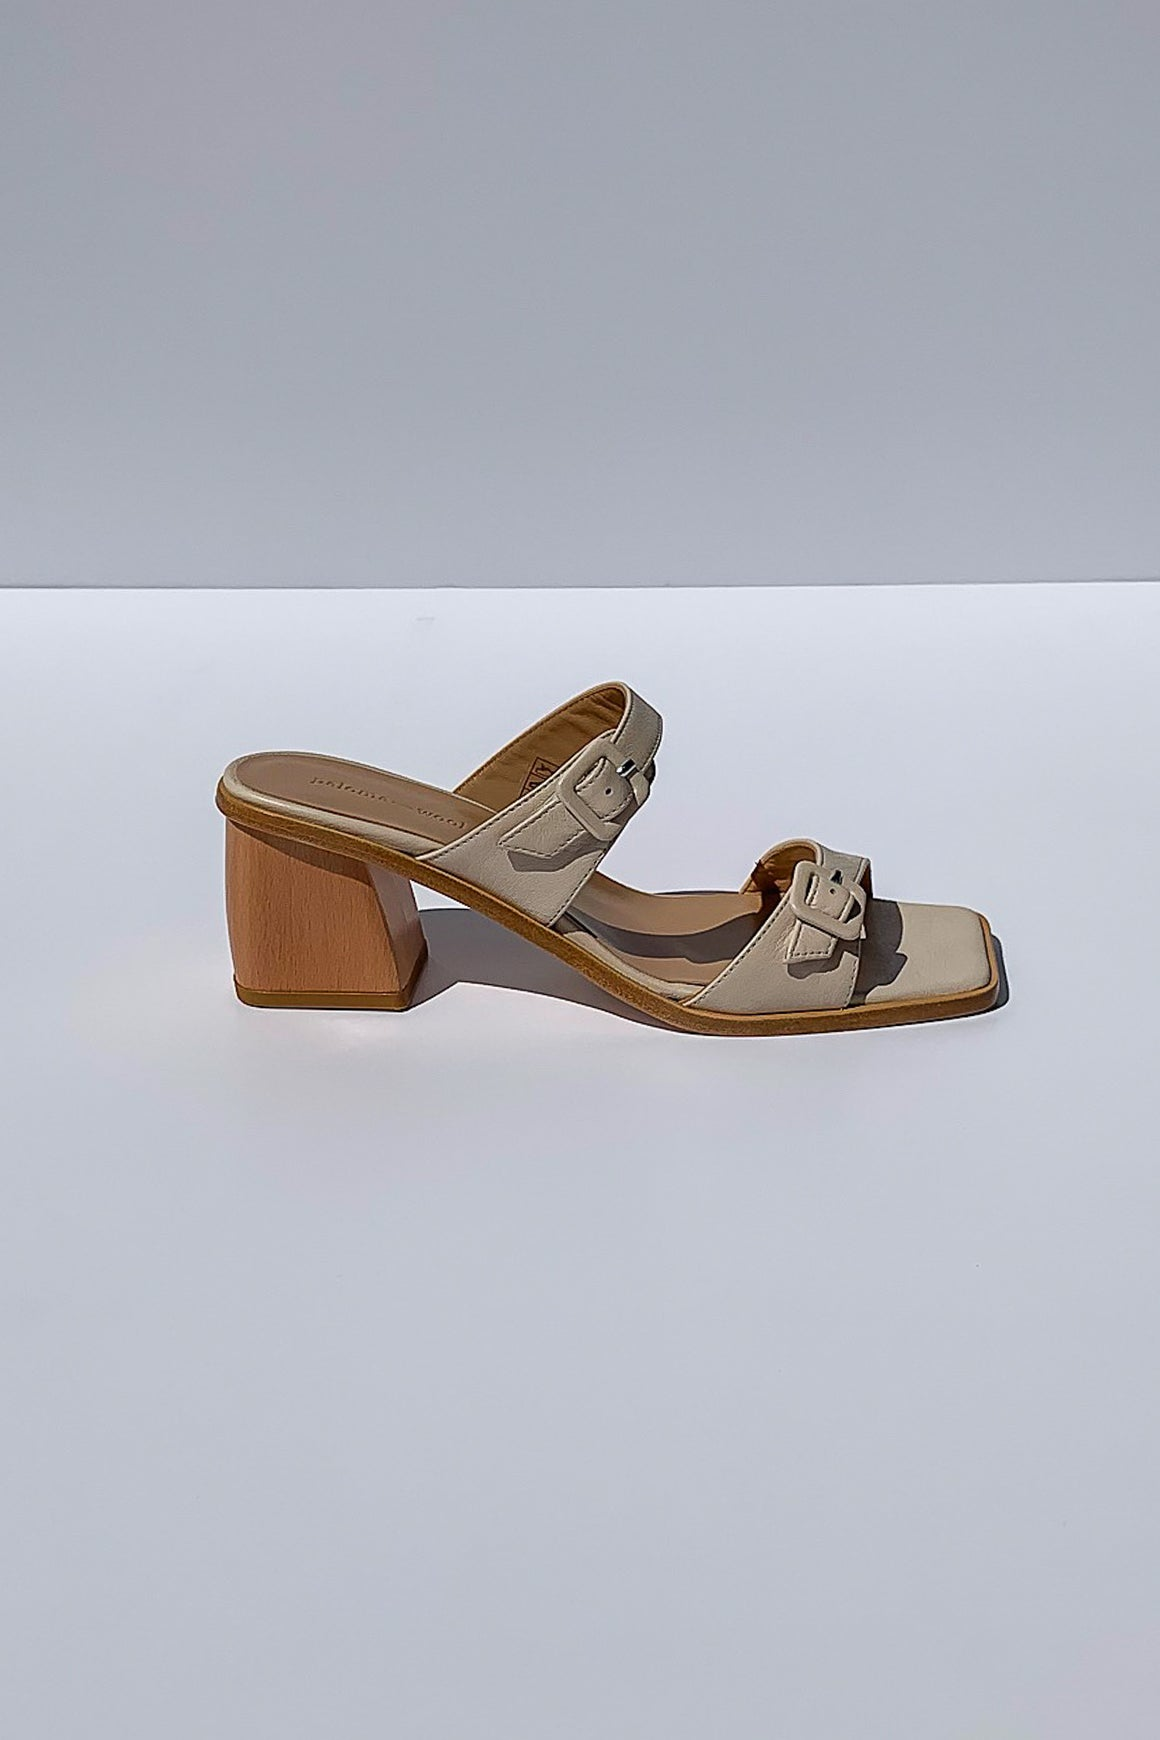 Feria Sandal - Off White